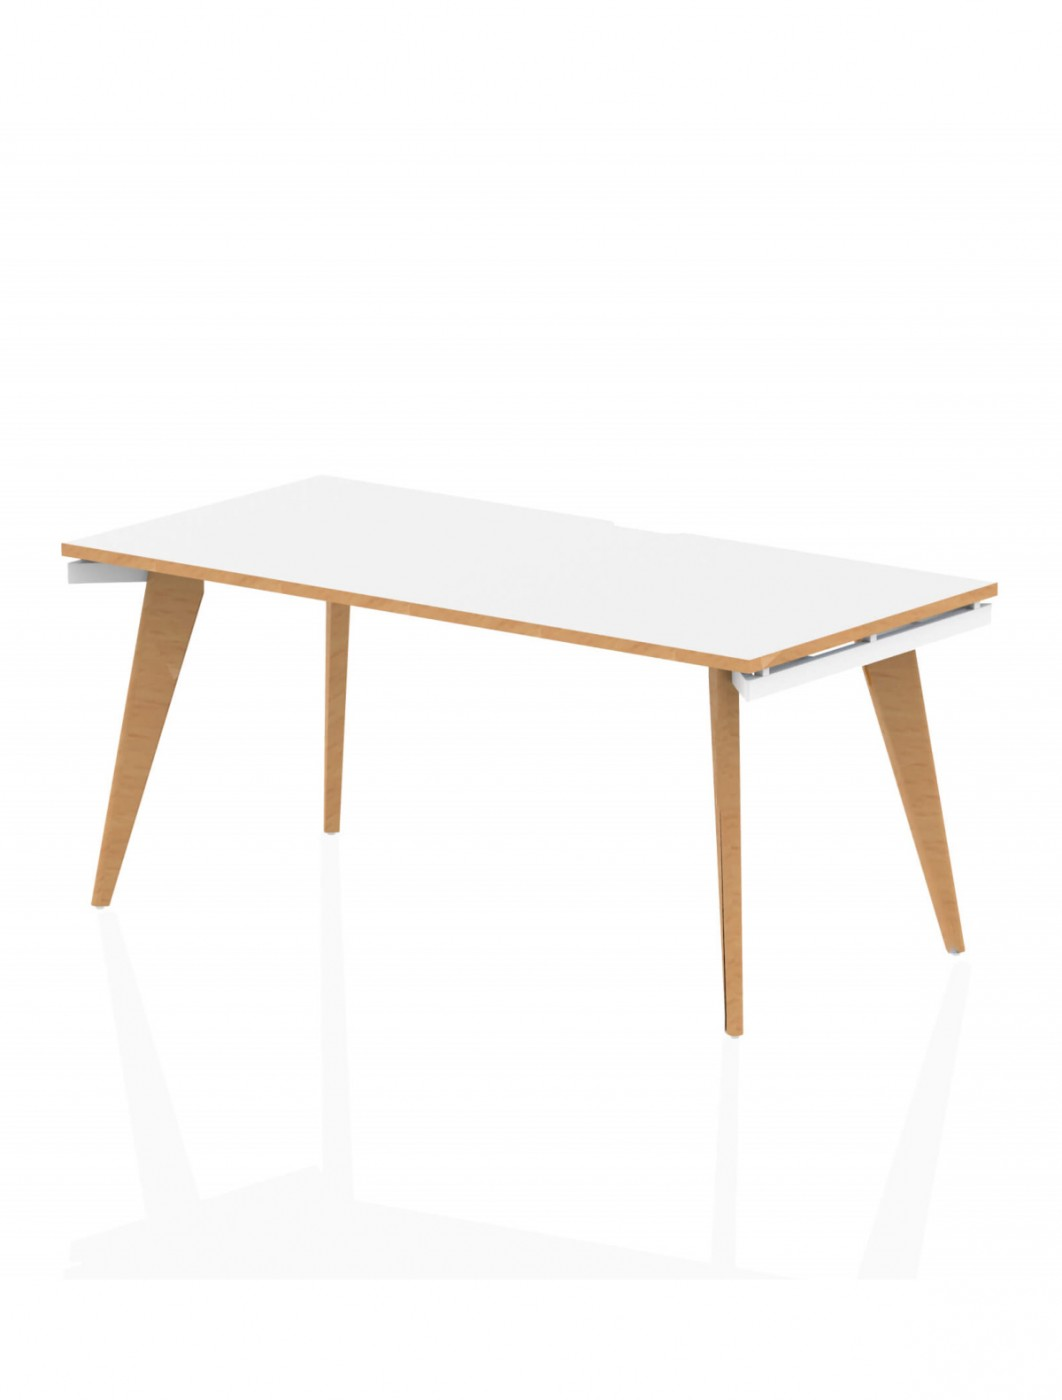 Home Office Desk White and Wood Oslo 1600mm Bench Desk OSS16WHT by Dynamic